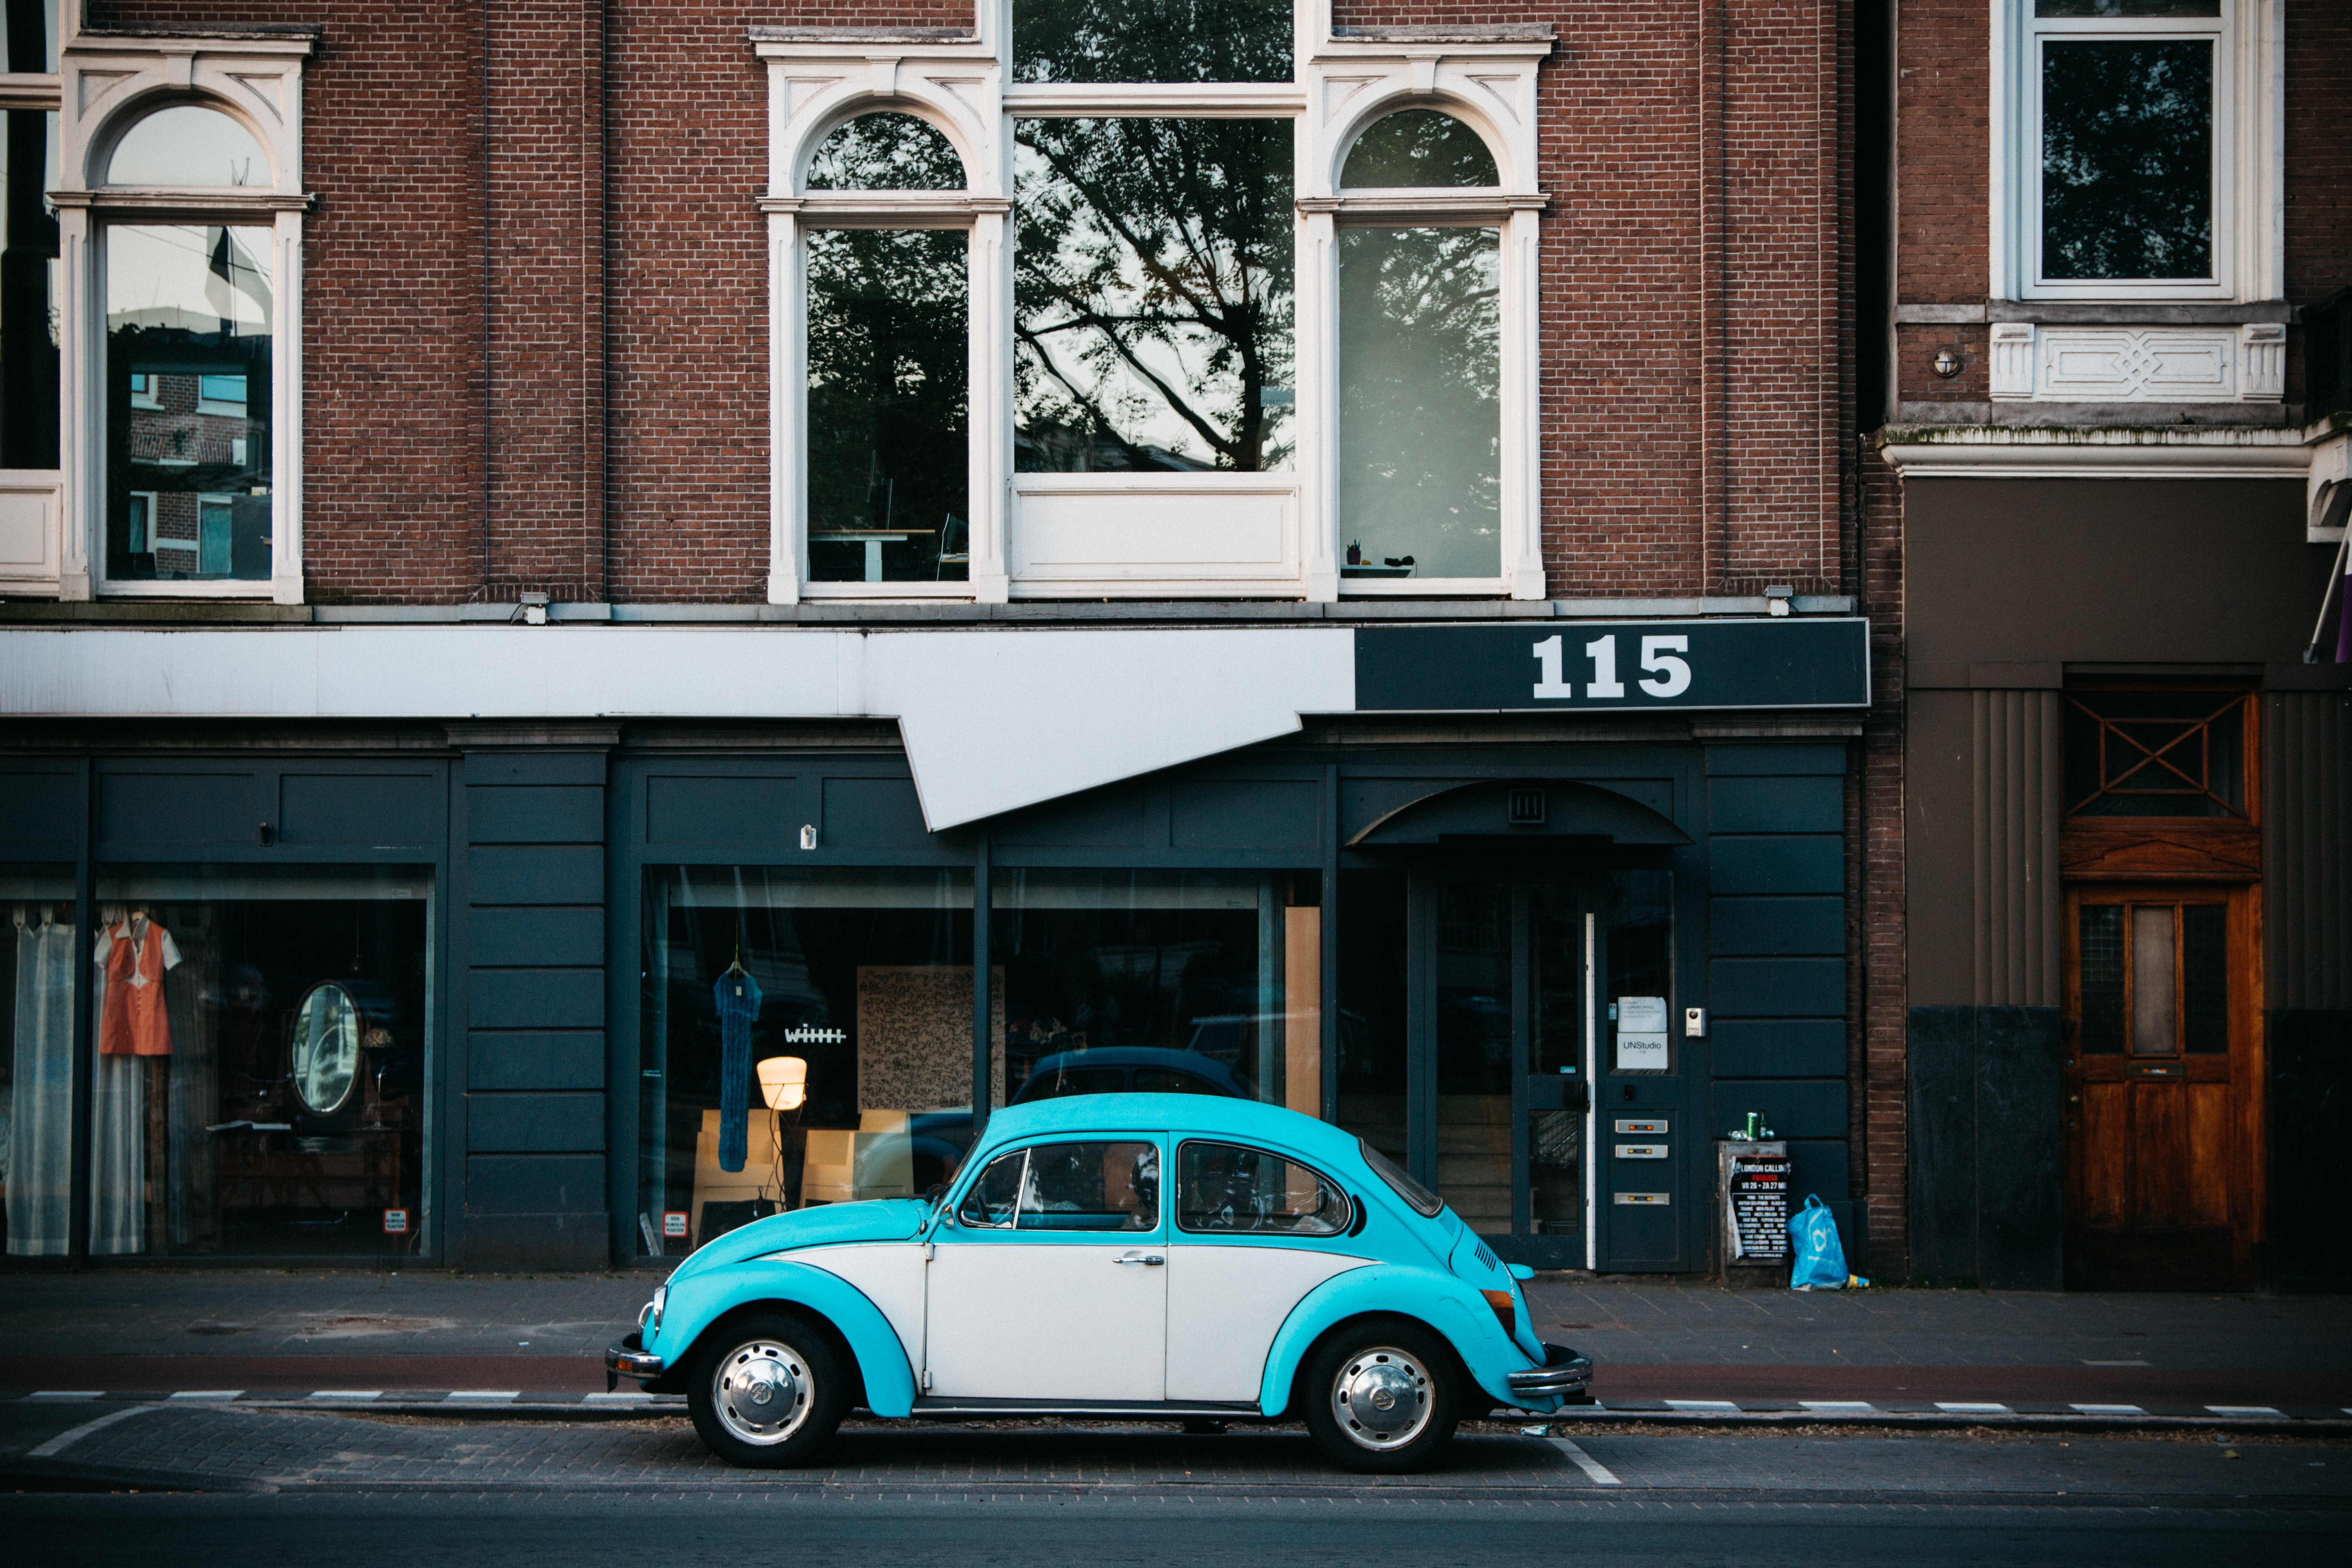 Volkswagen Beetle parking near building beside road